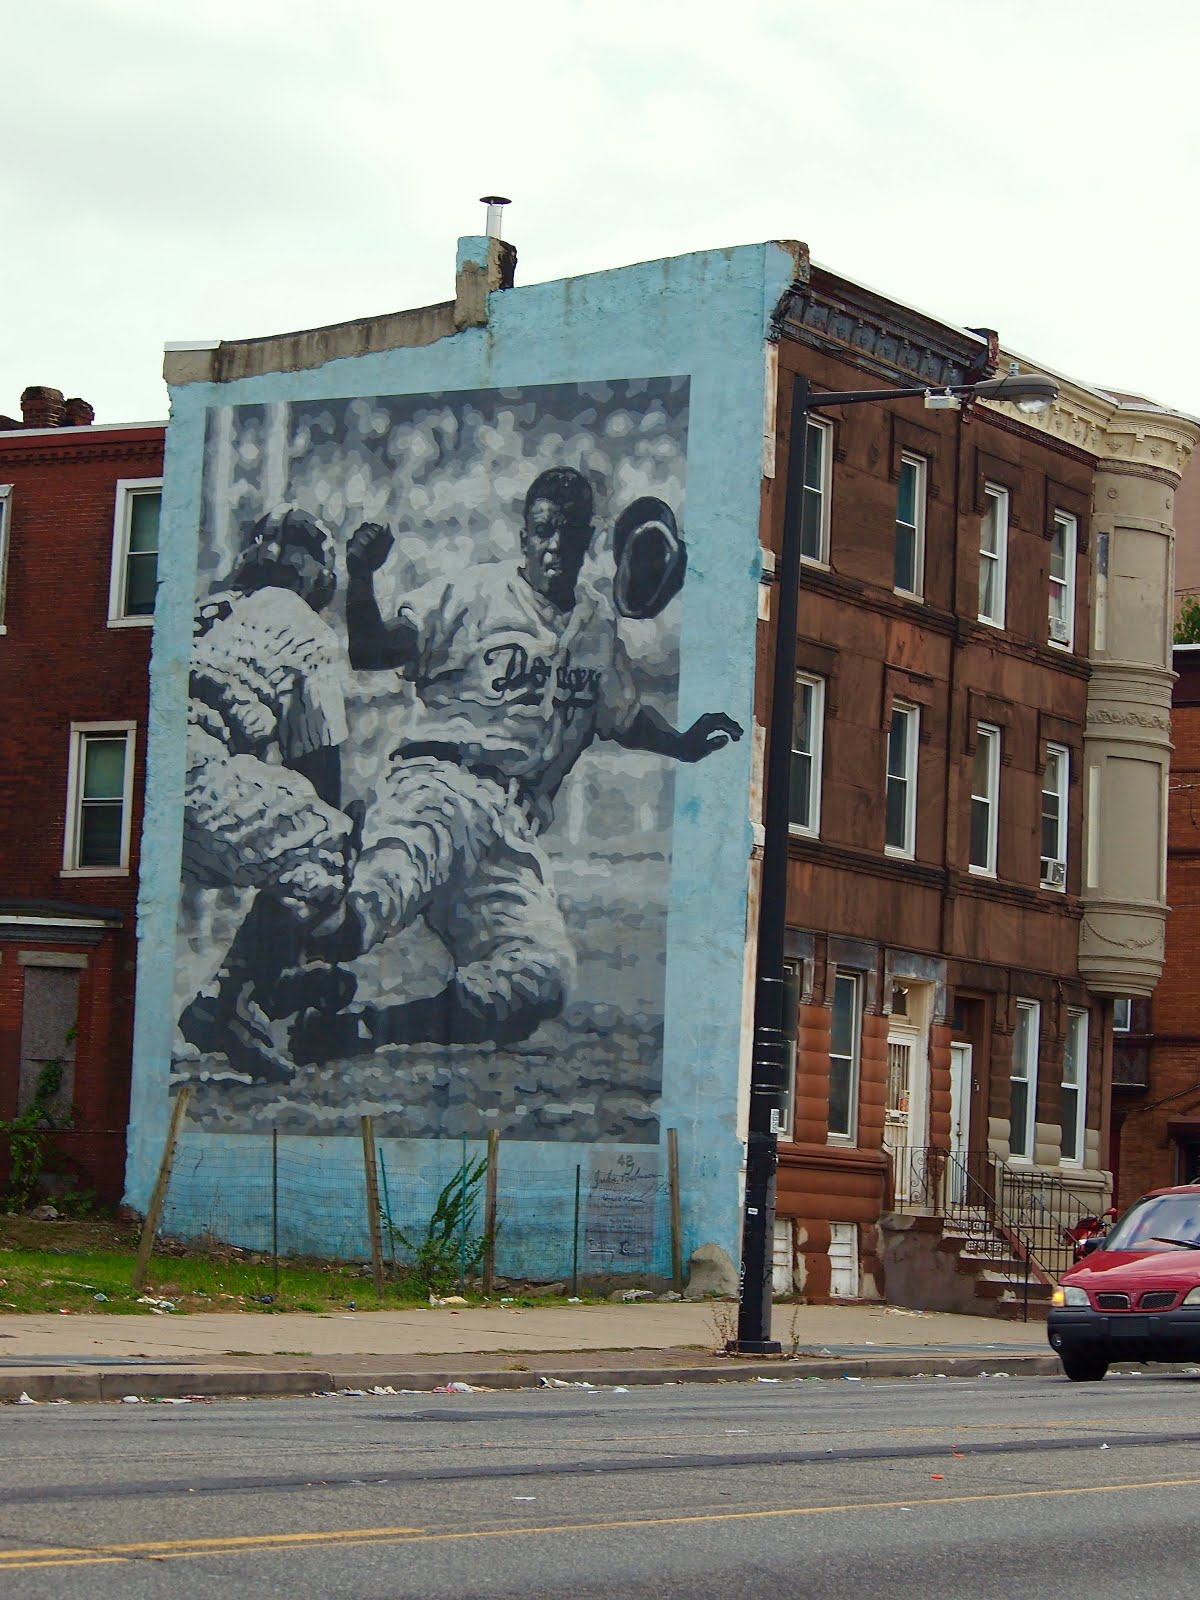 Dr dick 39 s report my best and favorite photos of 2015 for Dr j mural philadelphia